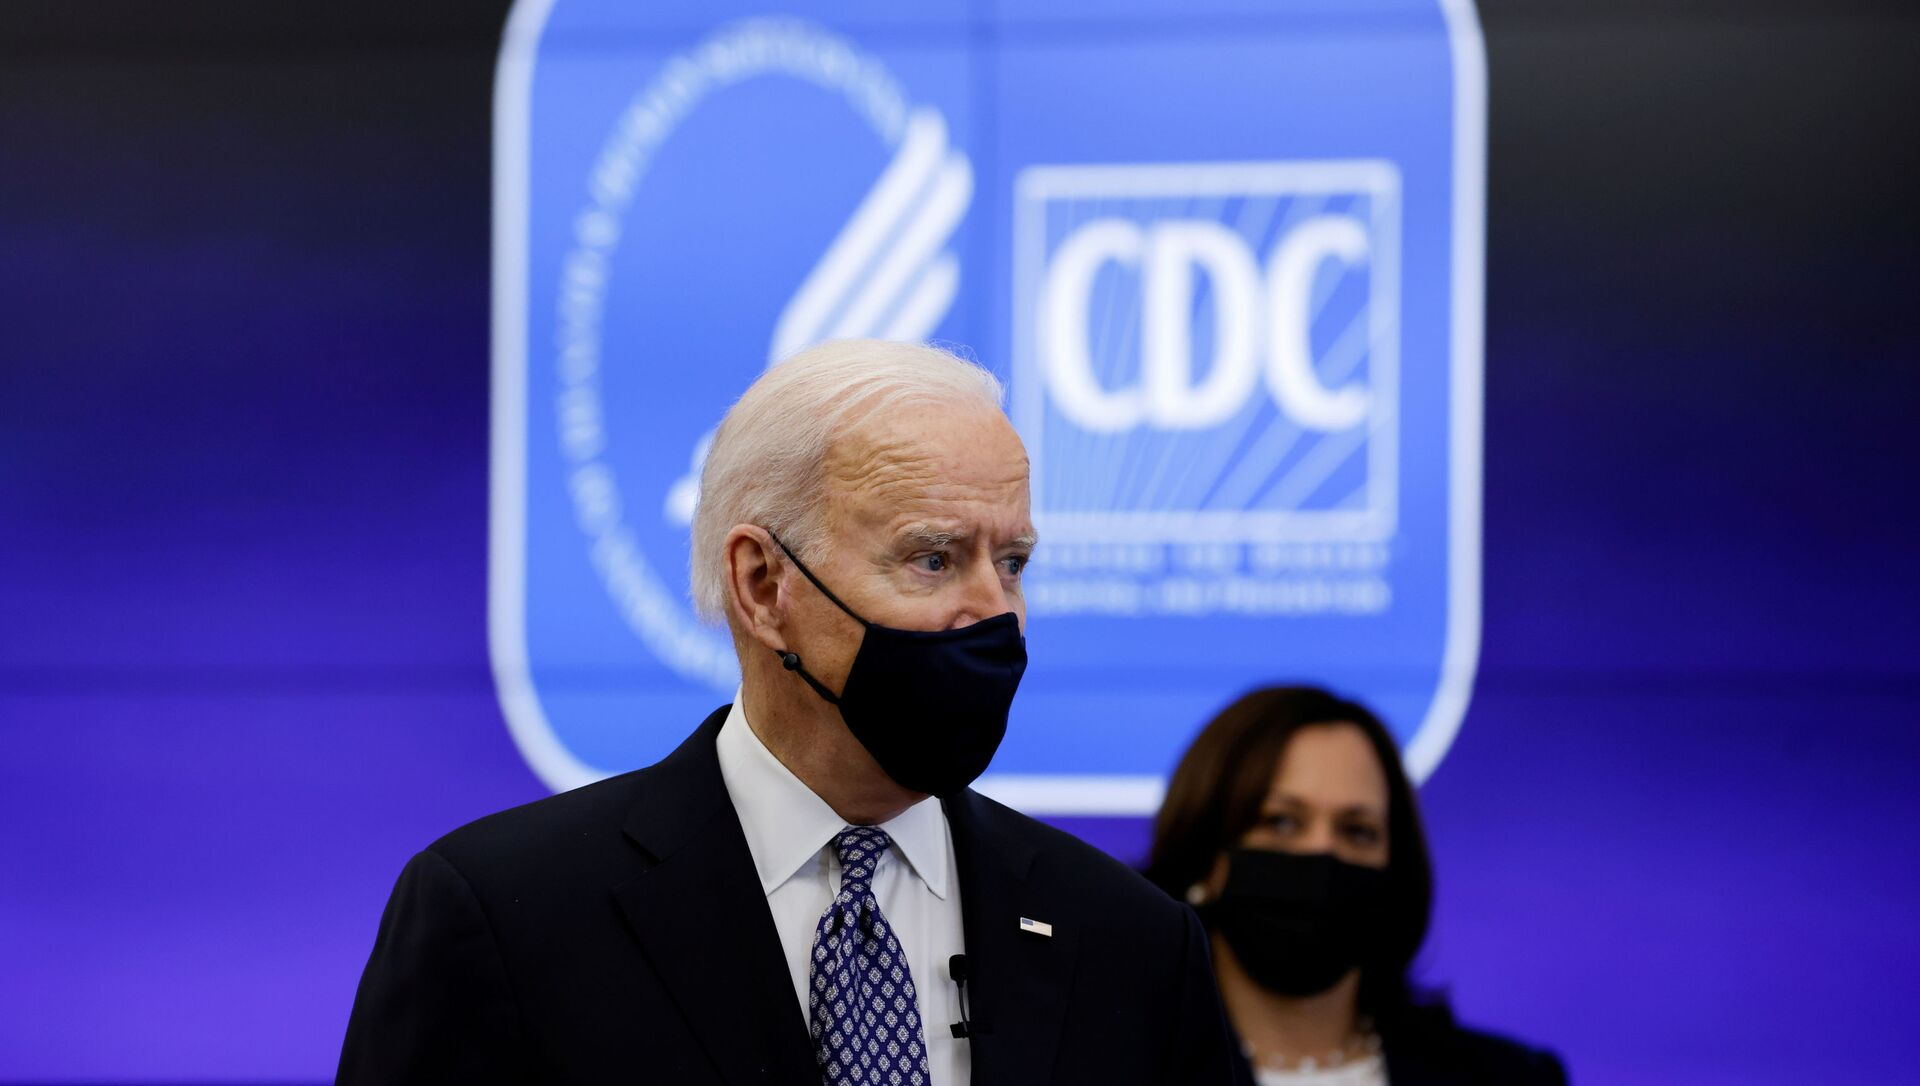 U.S. President Joe Biden and Vice President Kamala Harris receive an update on the fight against the coronavirus disease (COVID-19) pandemic as they visit the Centers for Disease Control and Prevention (CDC) in Atlanta, Georgia, U.S., March 19, 2021 - Sputnik International, 1920, 30.03.2021